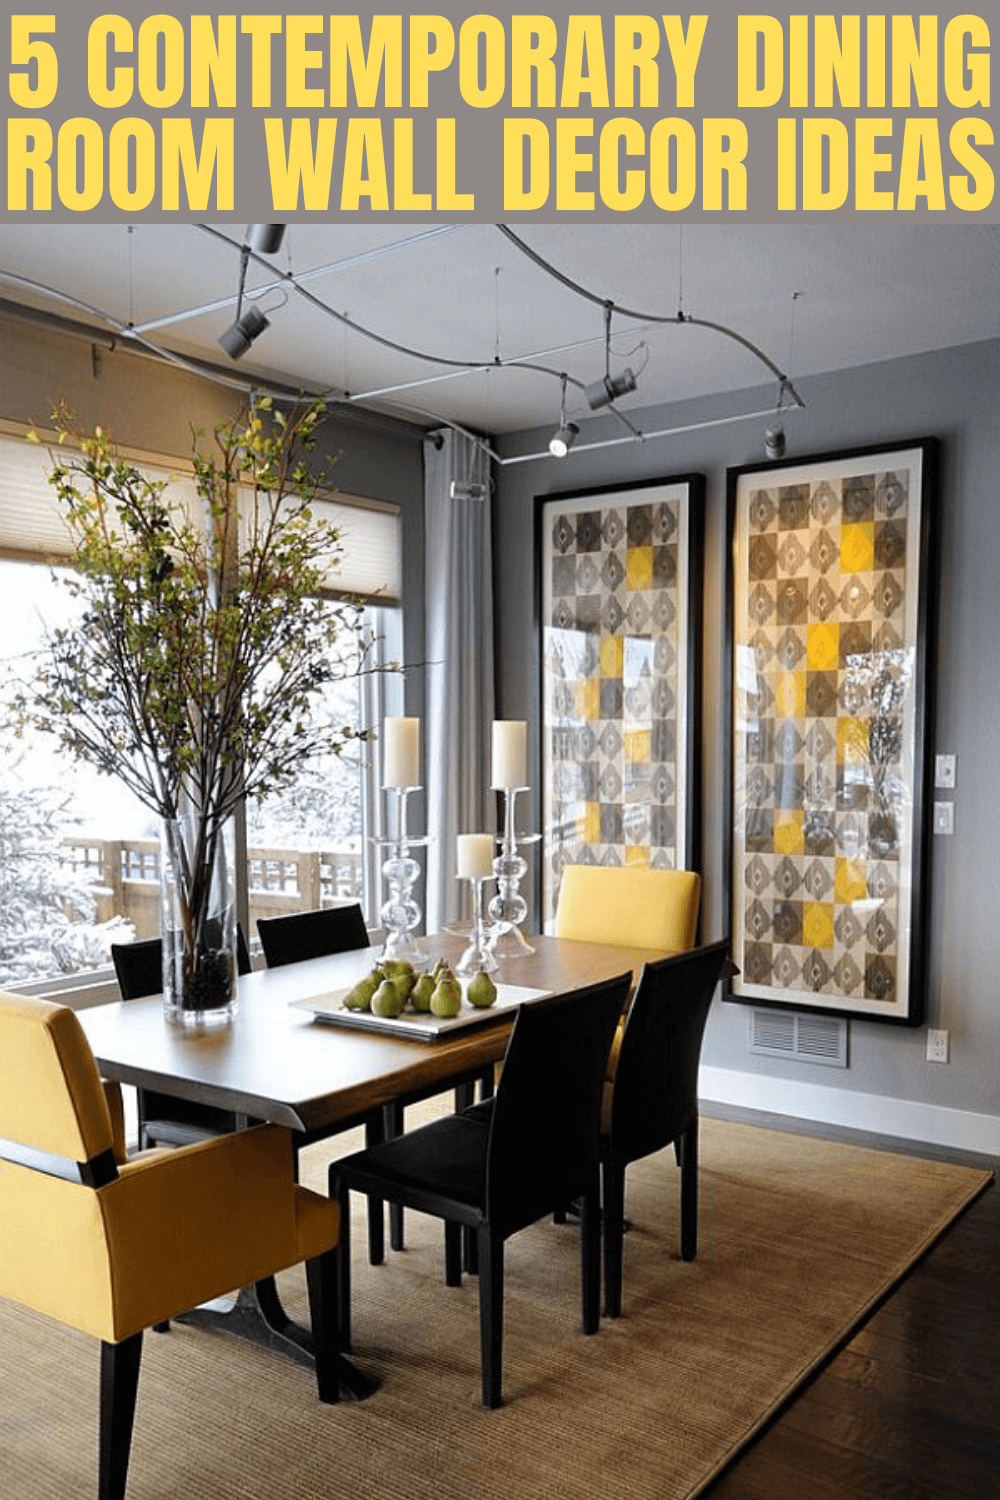 5 CONTEMPORARY DINING ROOM WALL DECOR IDEAS